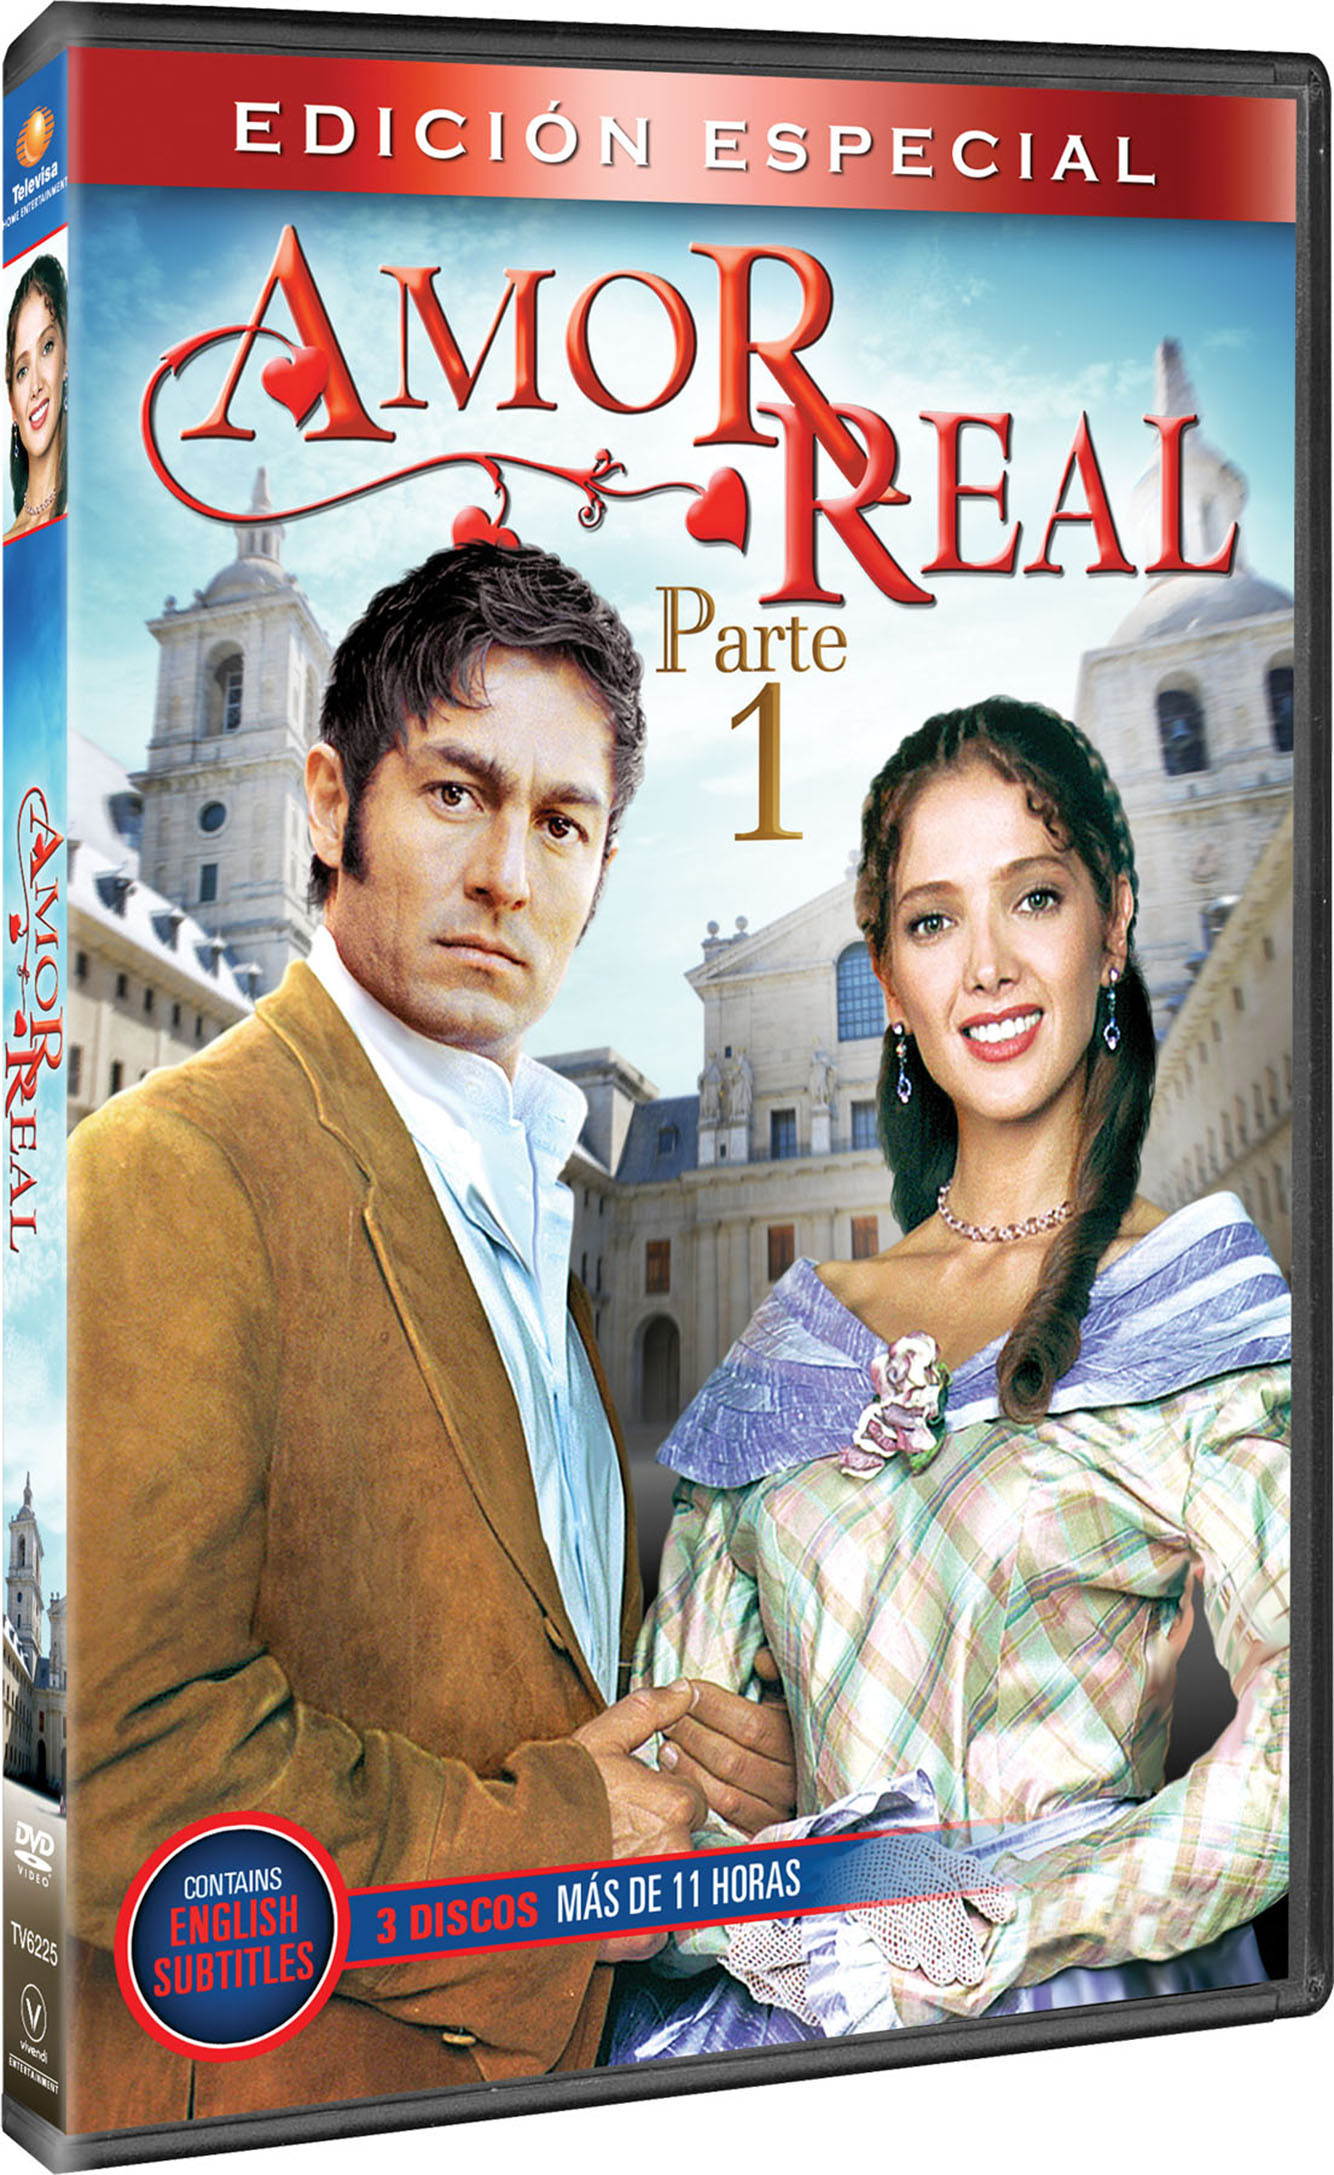 Amor Real amor real, special edition: volume 1 - televisa - cinedigm